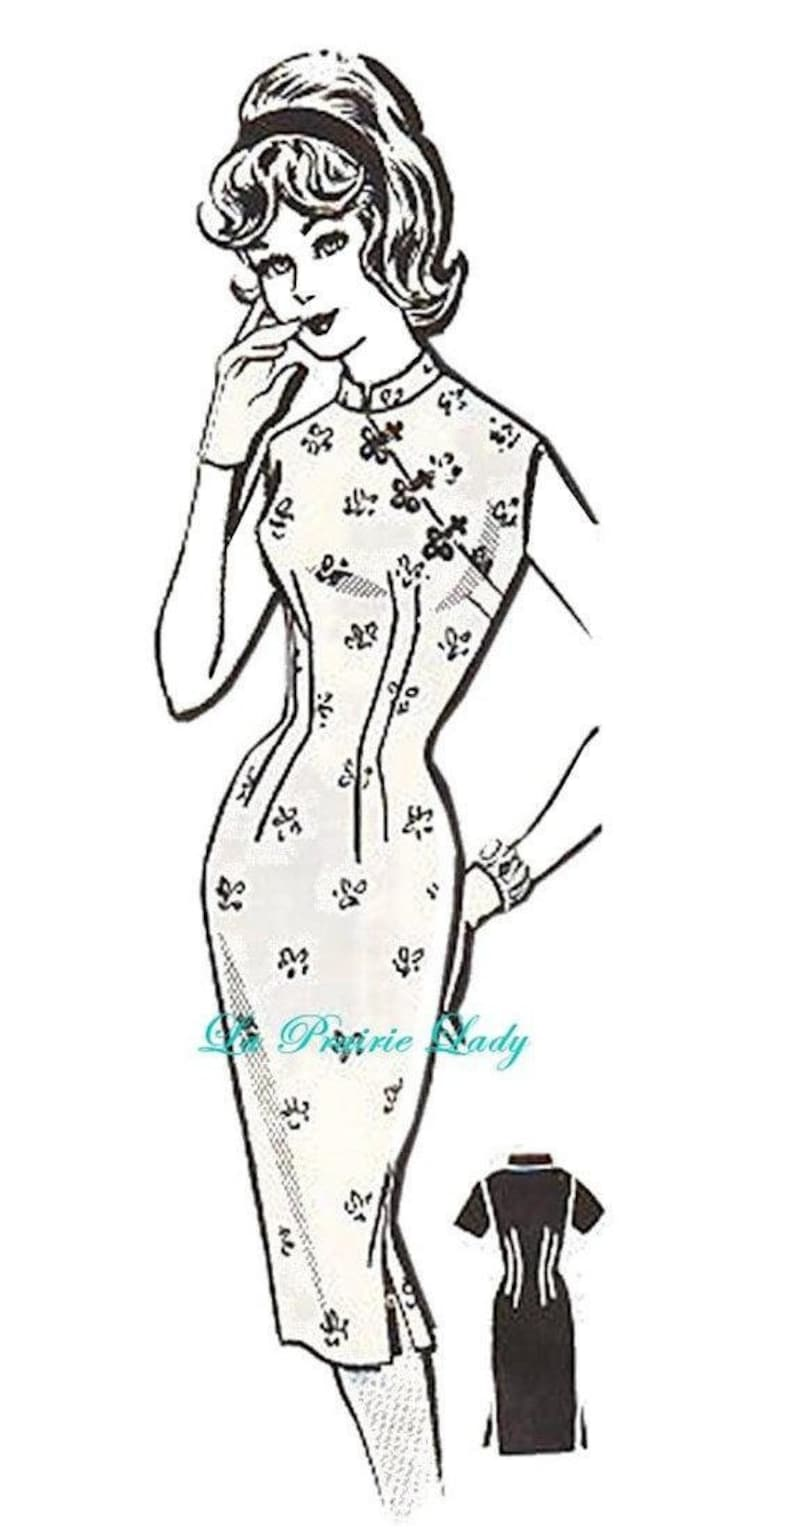 1960s Sewing Patterns | 1970s Sewing Patterns Repro Vintage Pattern Chinese Sheath Dress later 1950s No 7 on Printable PDF Bust 32-33 $8.39 AT vintagedancer.com